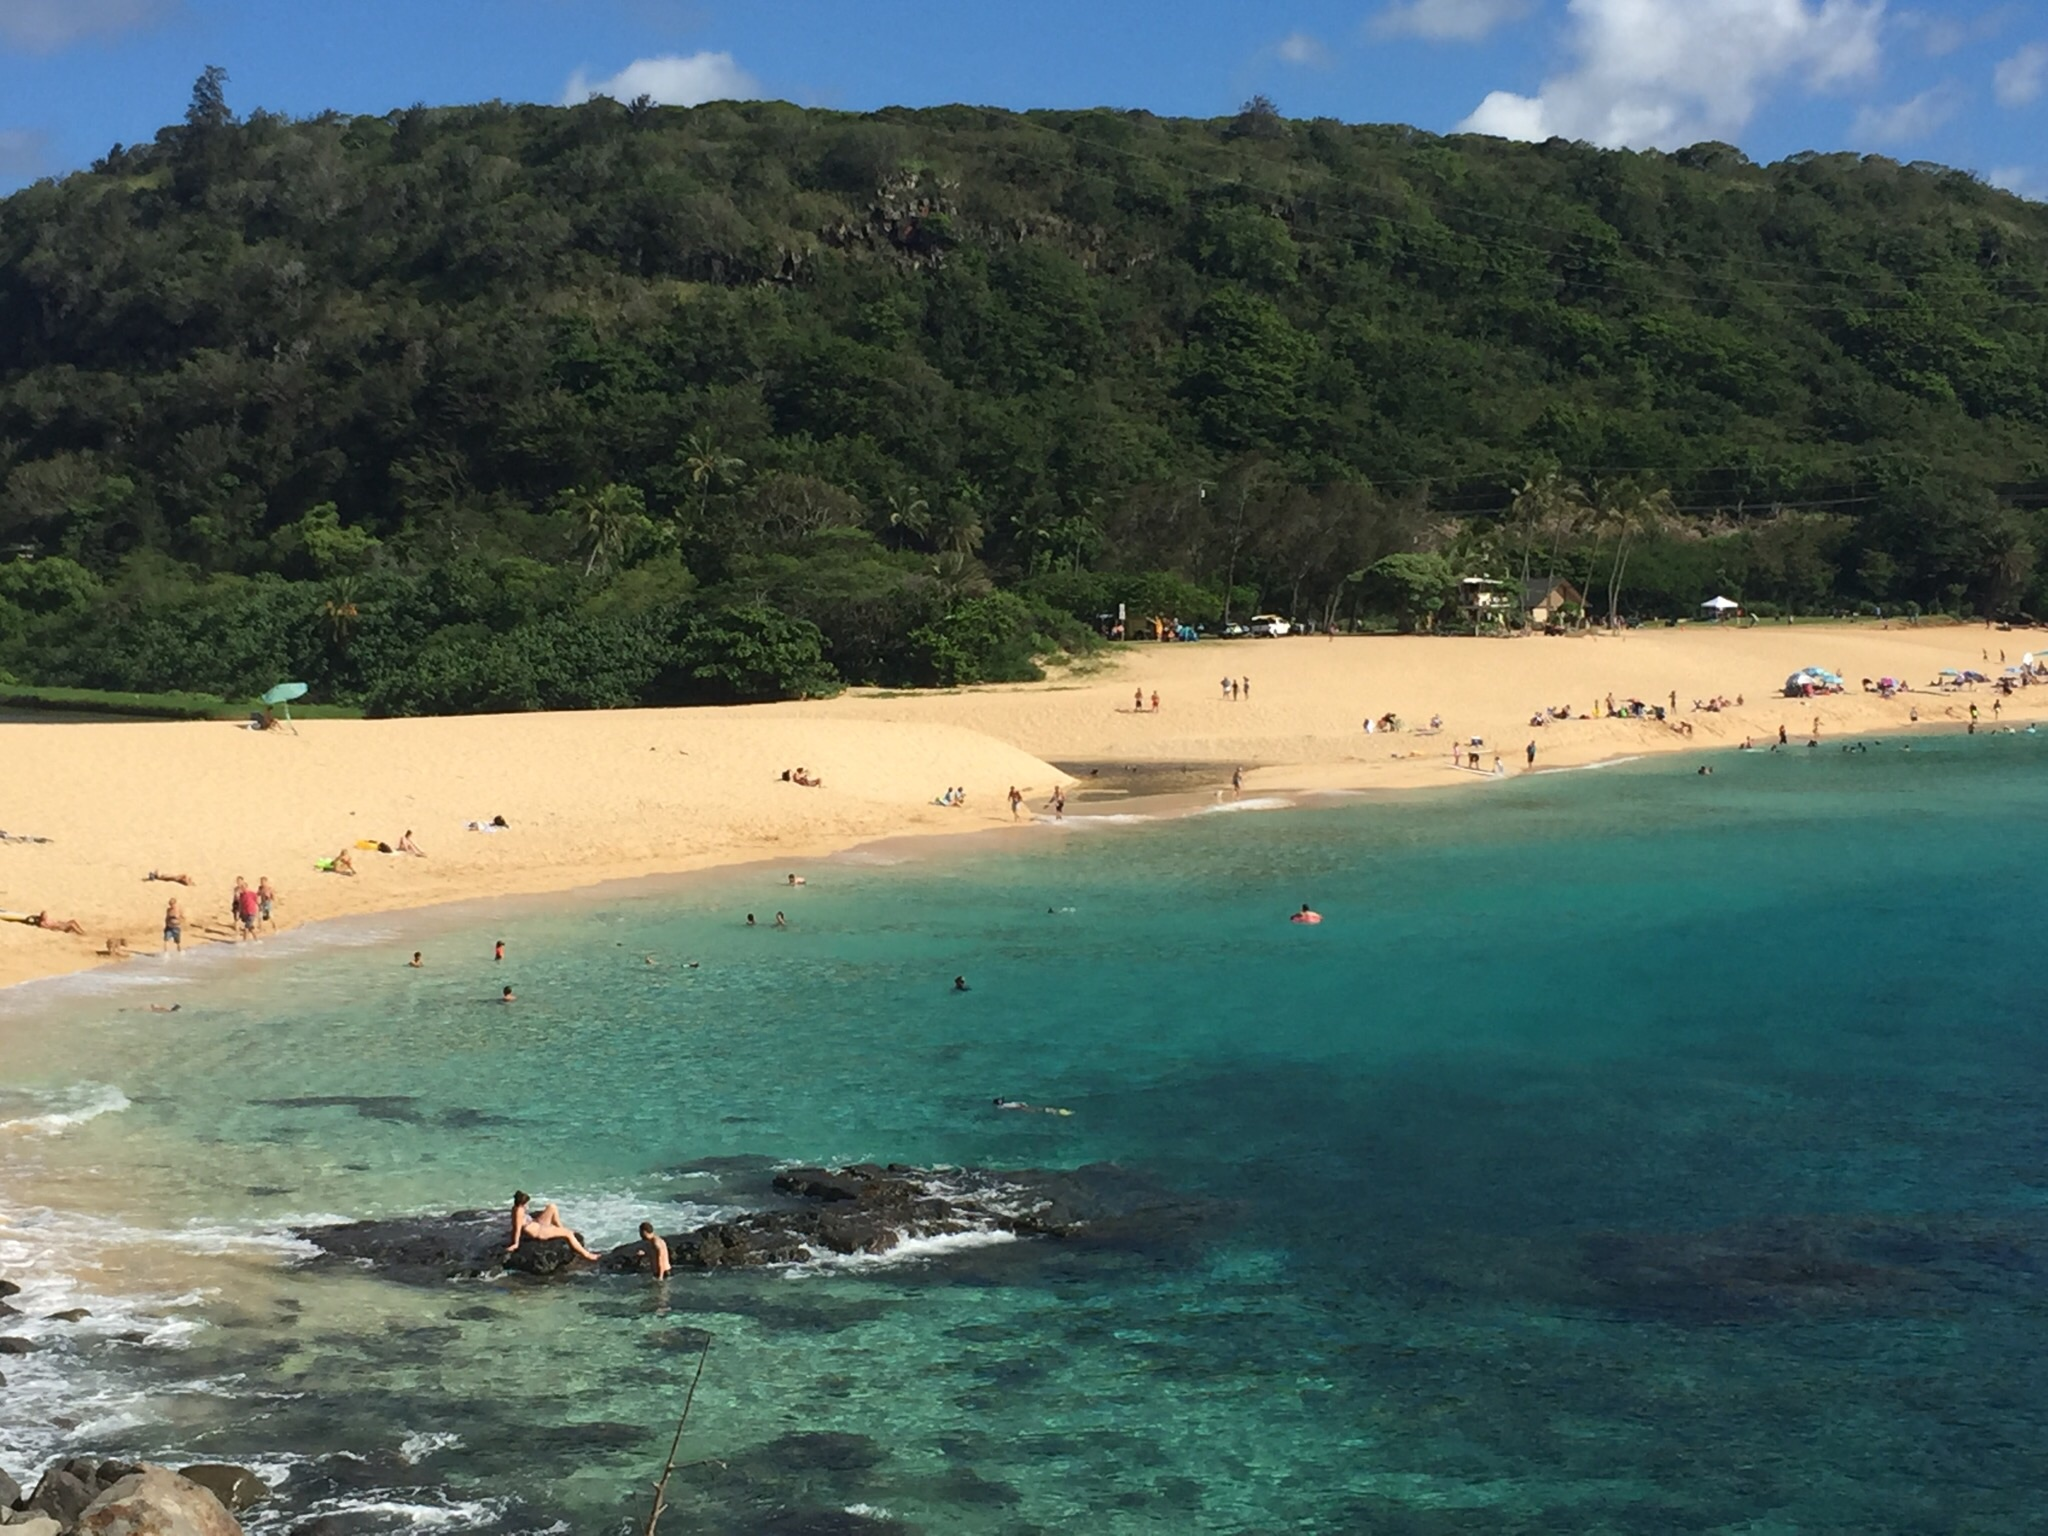 Waimea Bay - difficult to imagine pumping surf in winter